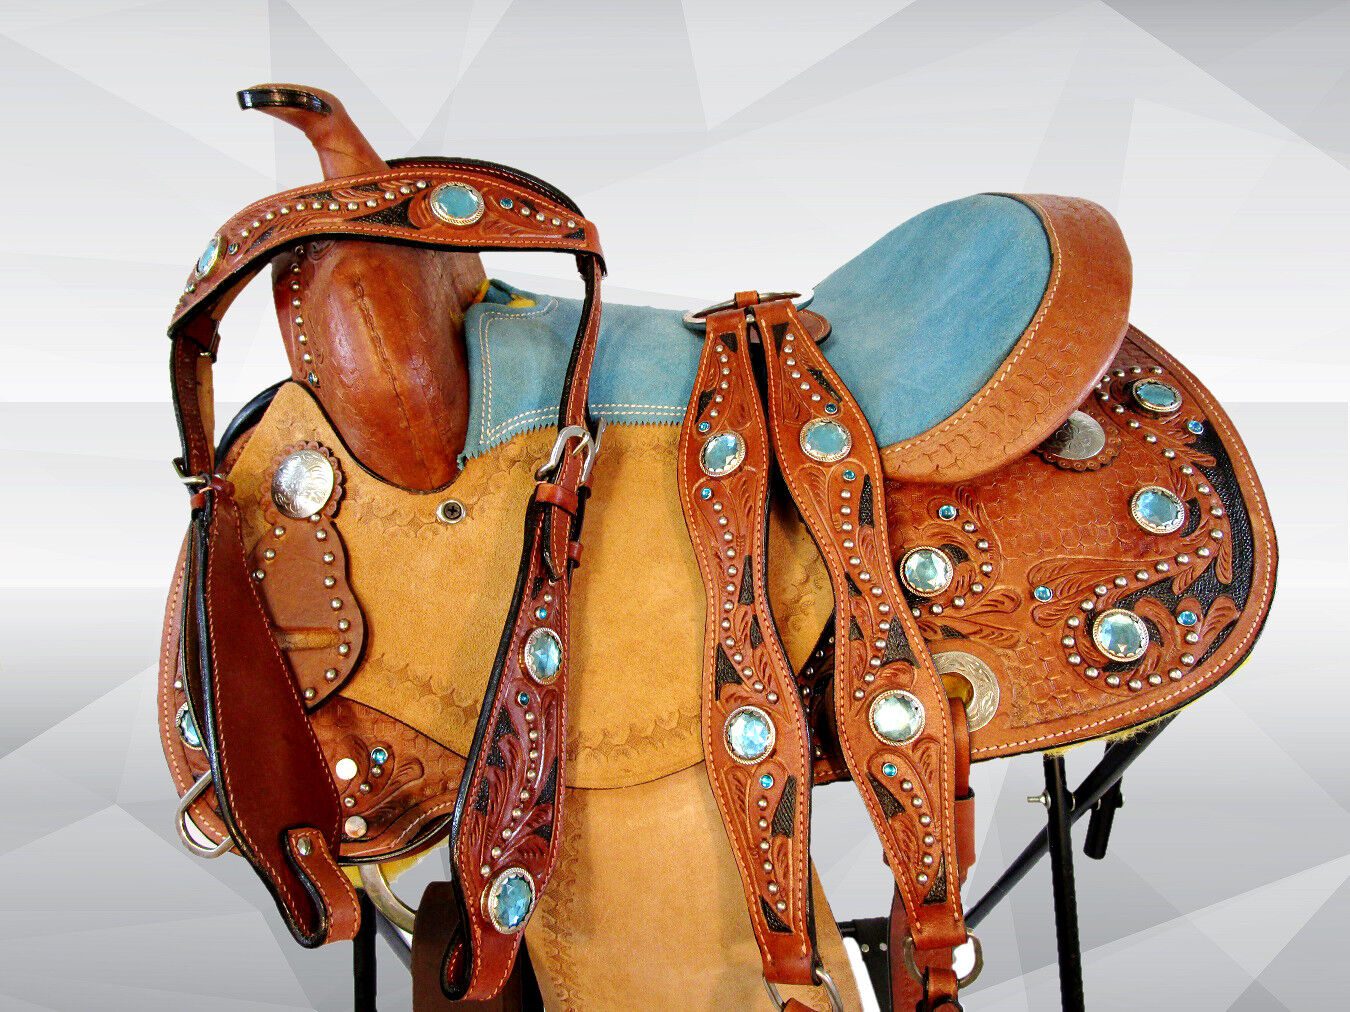 12 13 PREMIUM  LEATHER SHOW STAR TOOLED KIDS  LD BARREL YOUTH WESTERN SADDLE  brand outlet